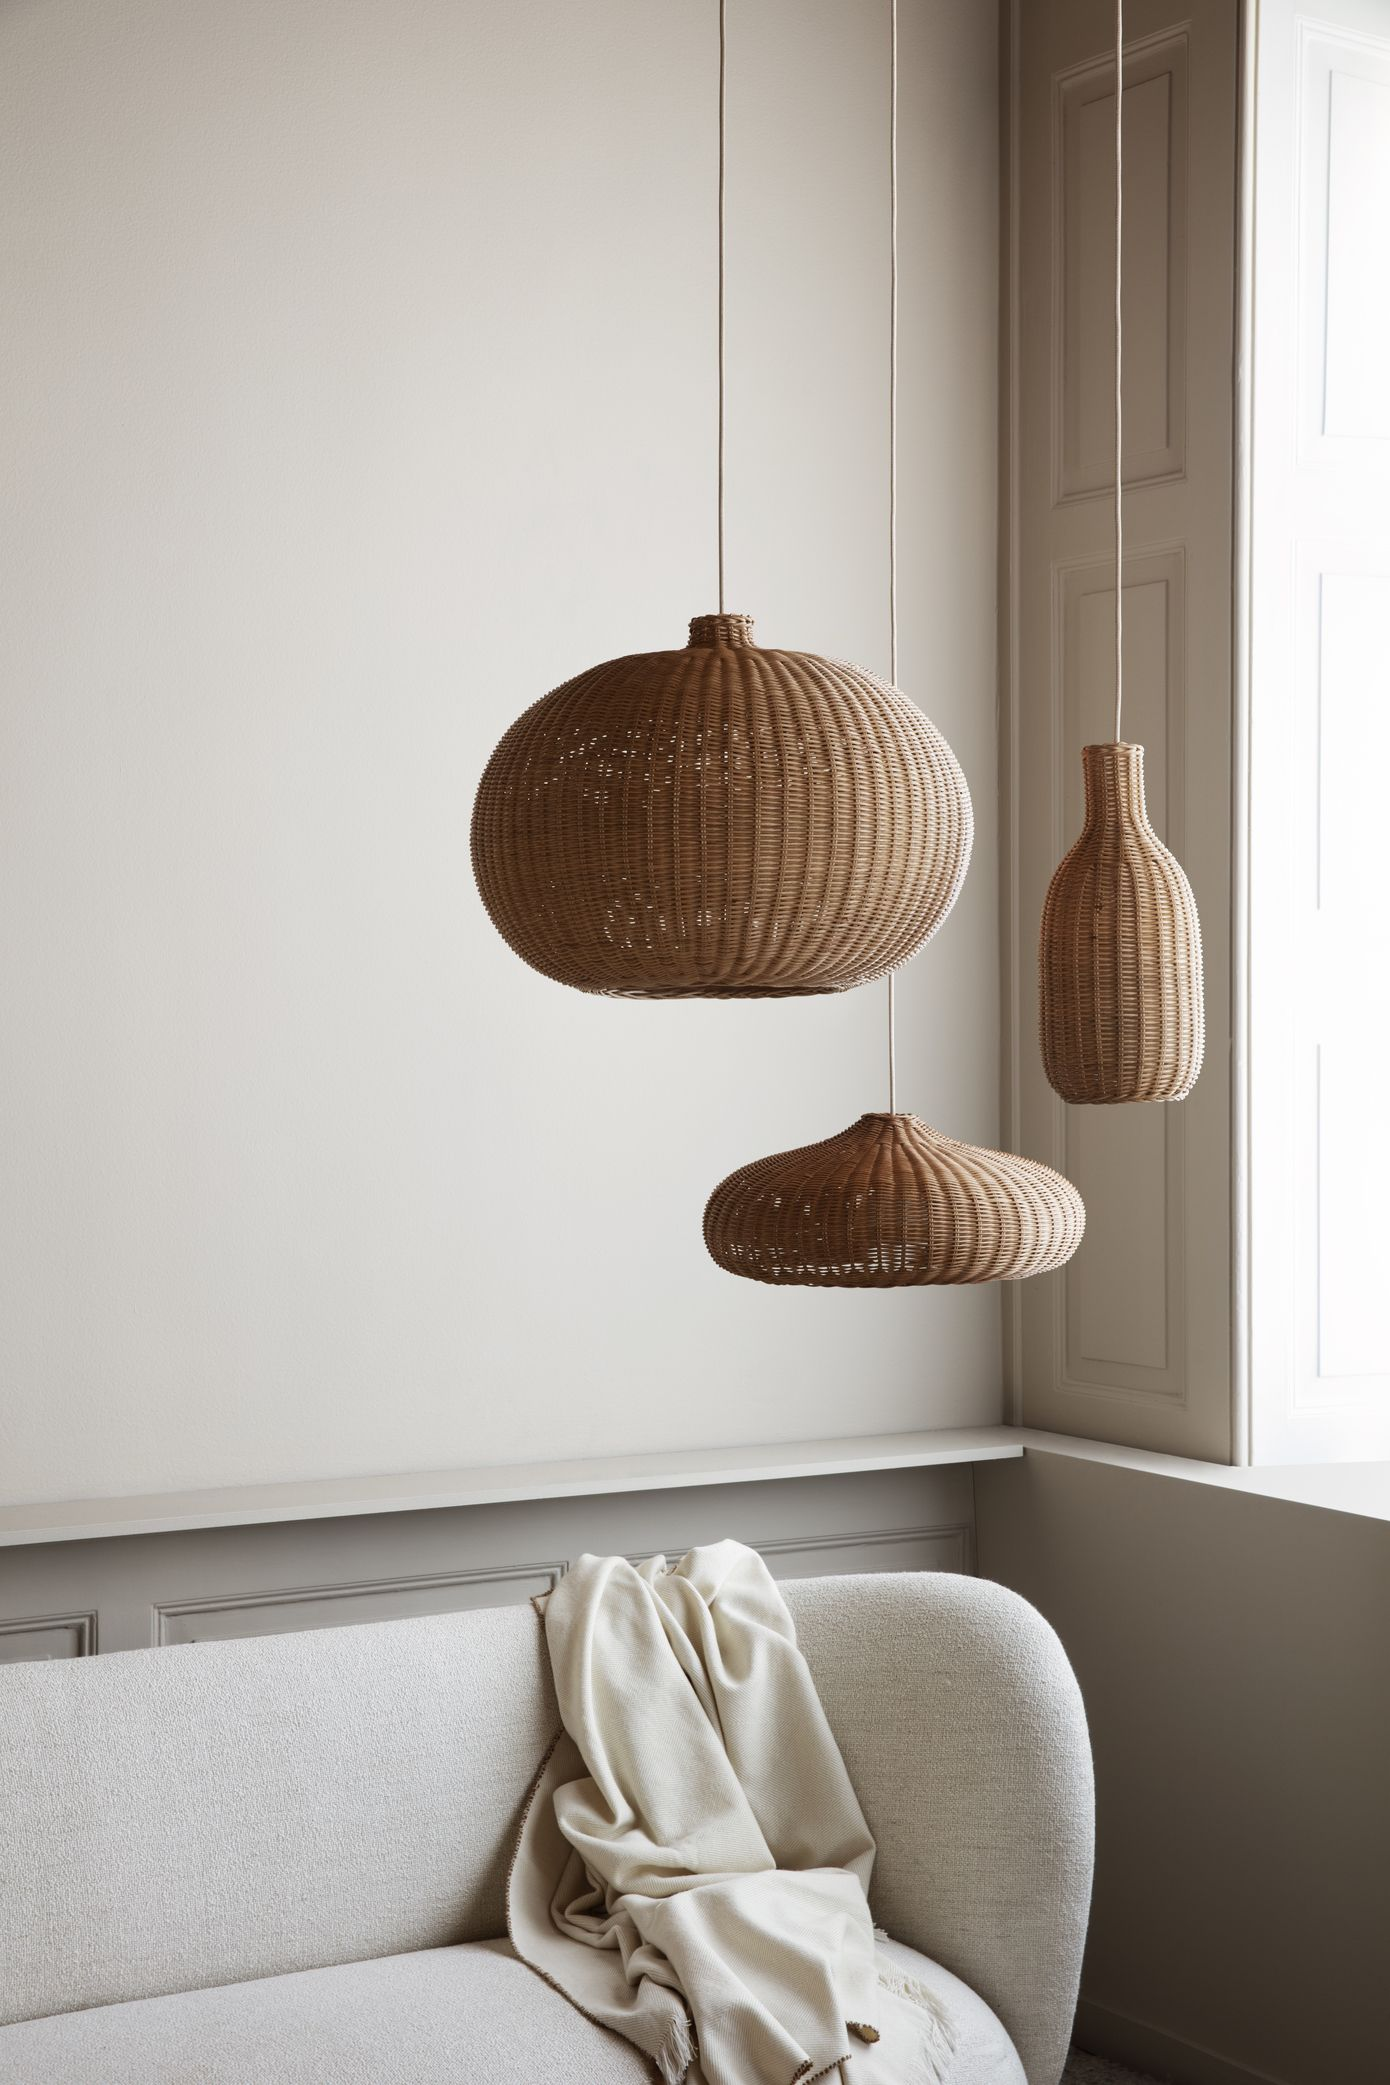 AW19 Ferm Living - Exploring the concept of a home - Hege in France